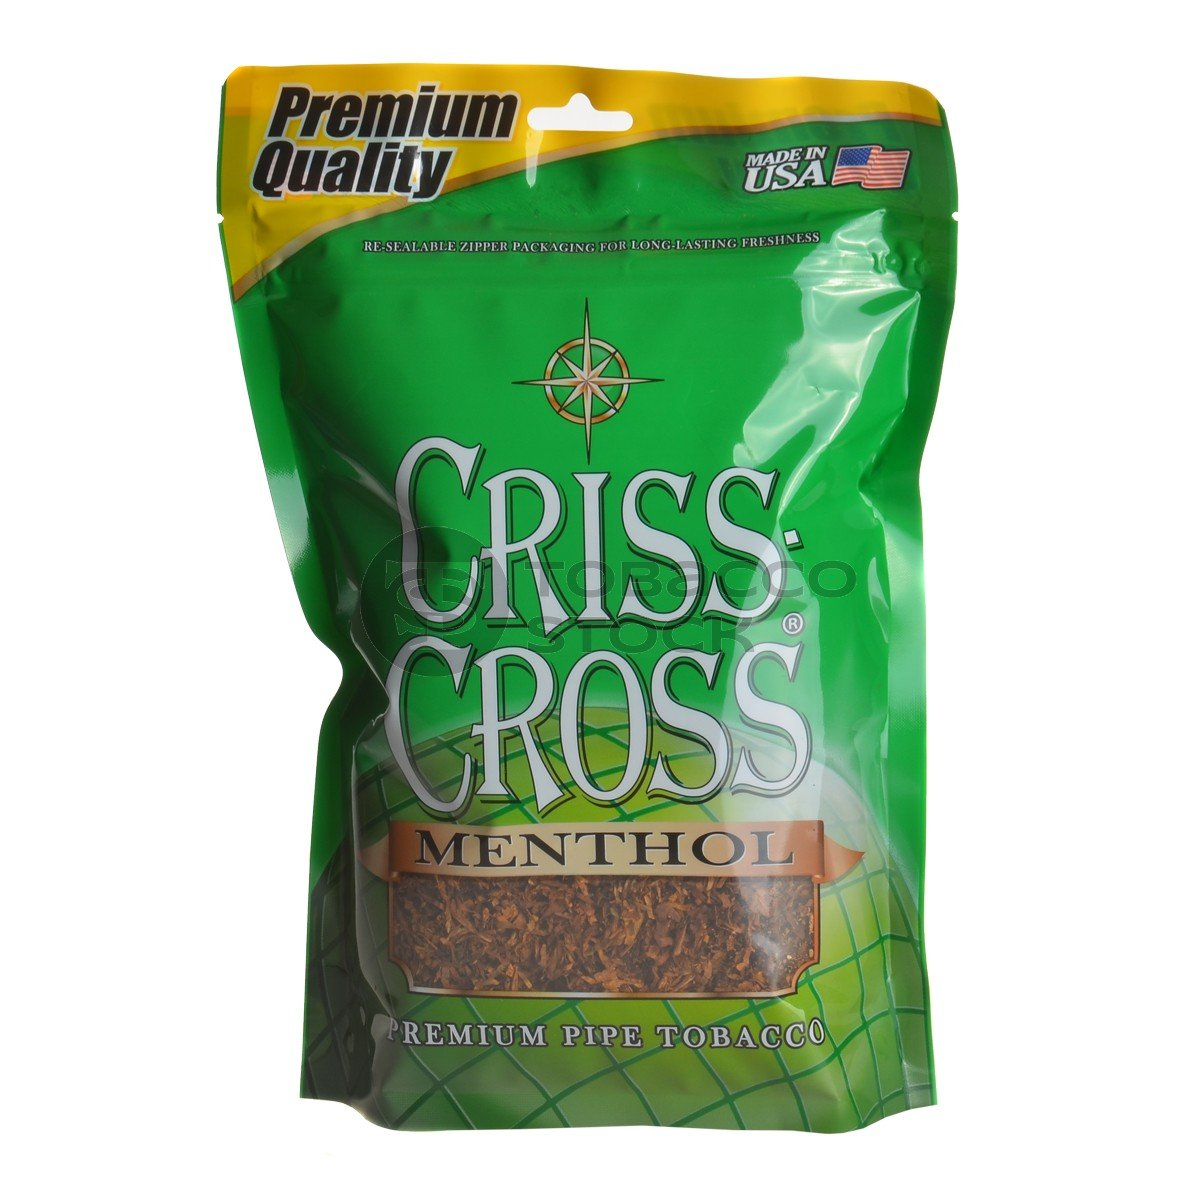 Criss Cross Menthol Pipe Tobacco Pack